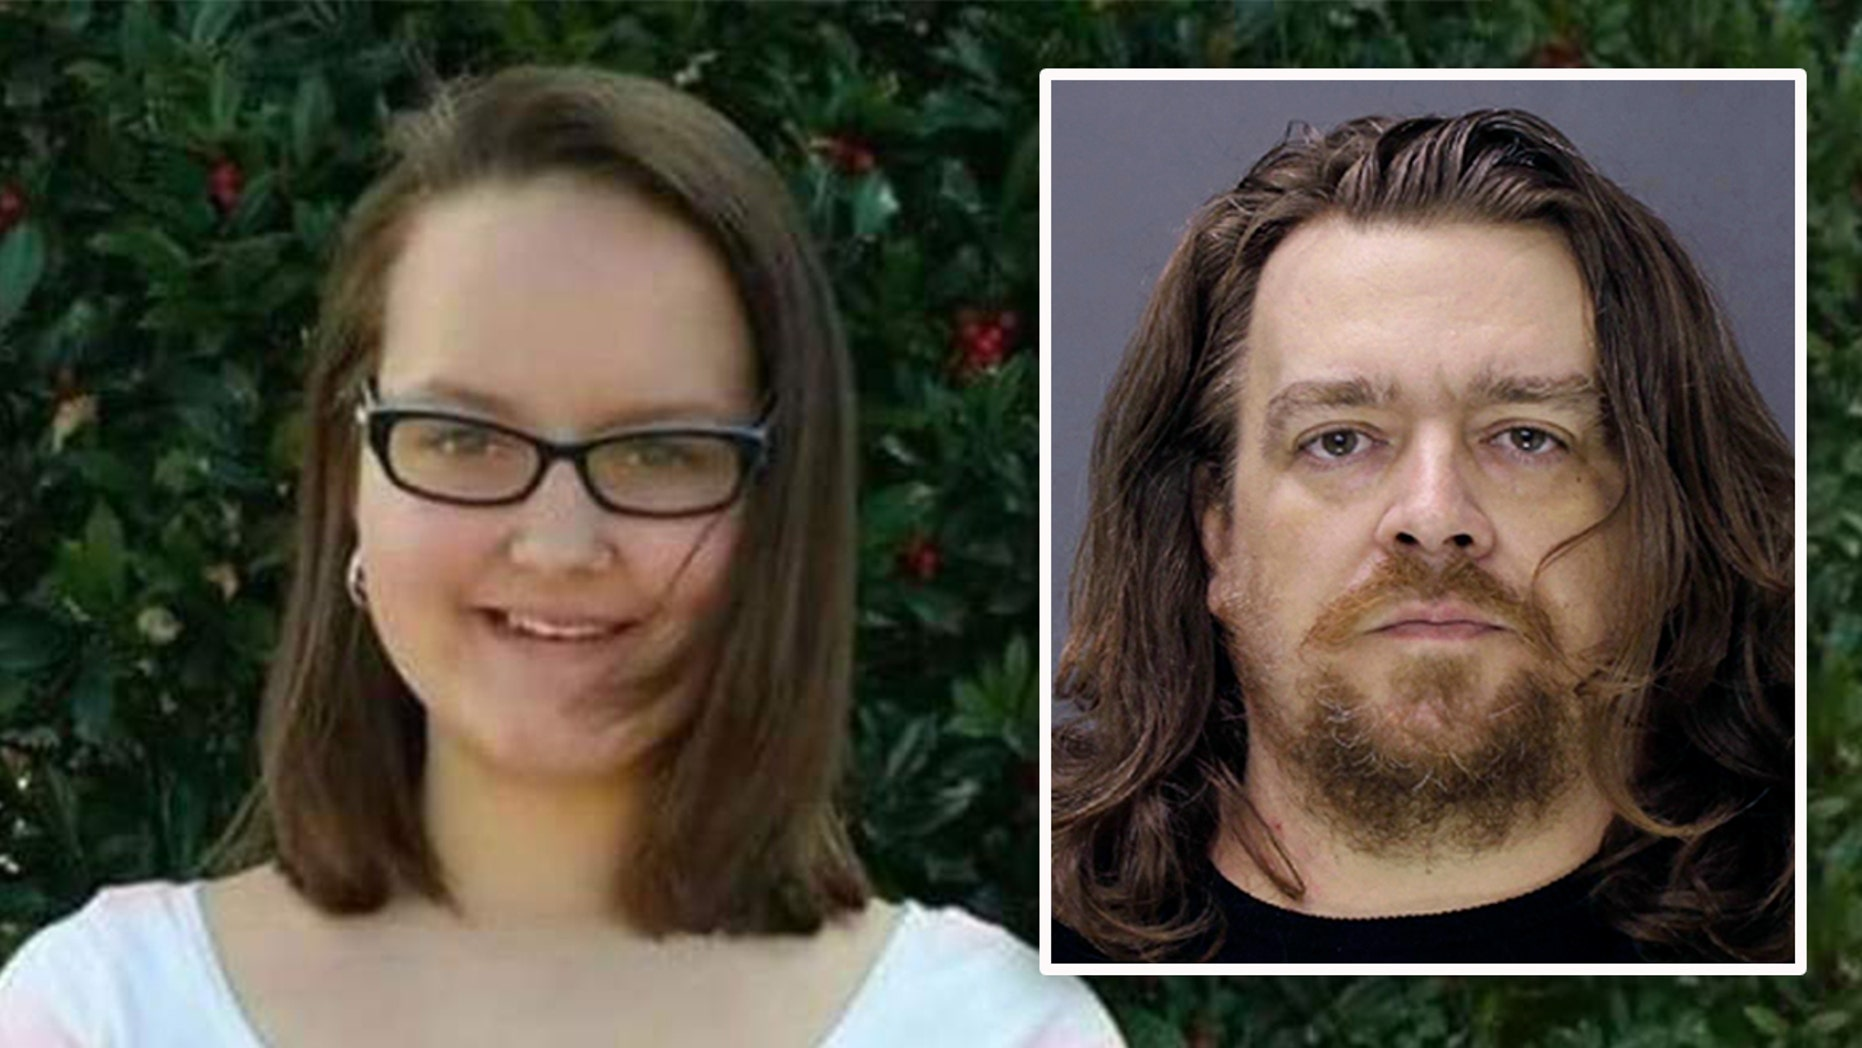 After 11 hours of deliberation, a jury imposed the death penalty on 46-year-old Jacob Sullivan after he pleaded guilty to first-degree murder for the 2016 killing of Grace Packer.